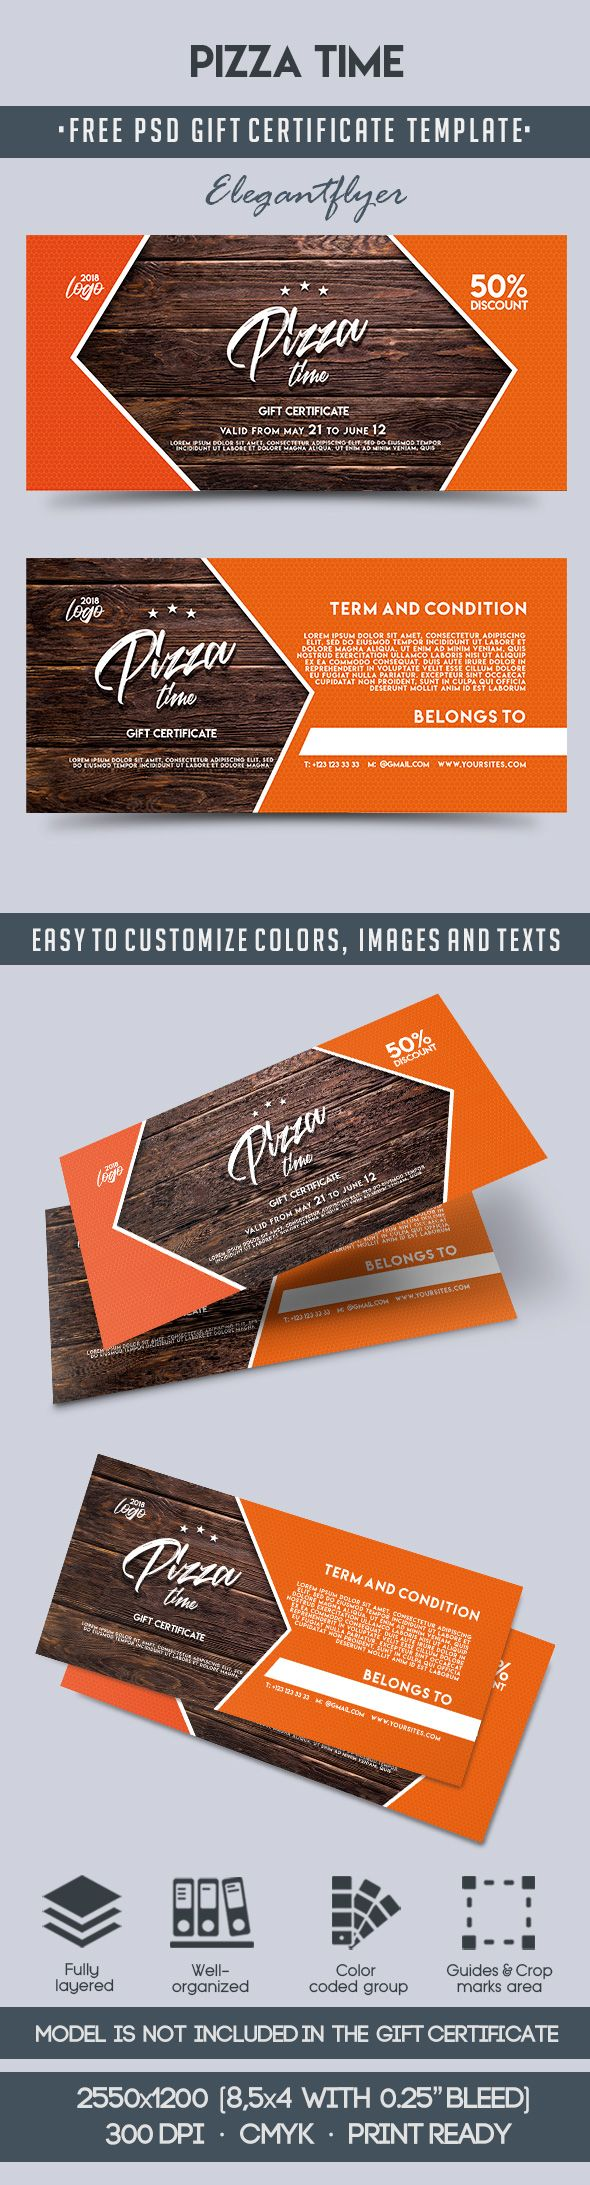 Pizza Time Free Gift Certificate Psd Template By Elegantflyer